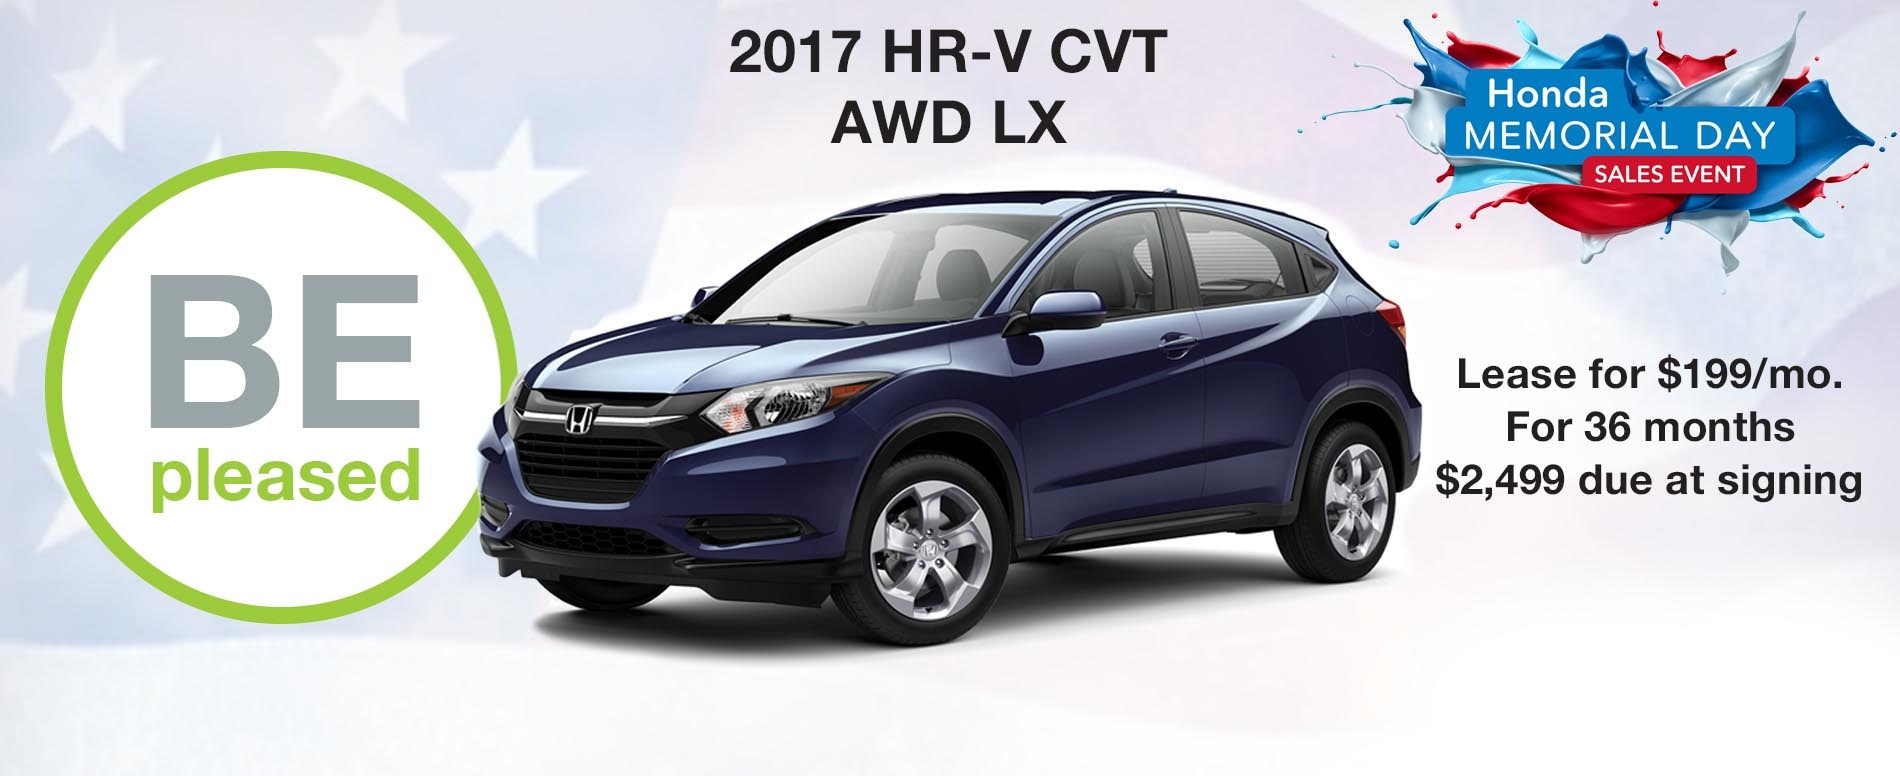 BE pleased. Lease a Honda HRV AWD LX for $199 per month with $2,499 due at signing.